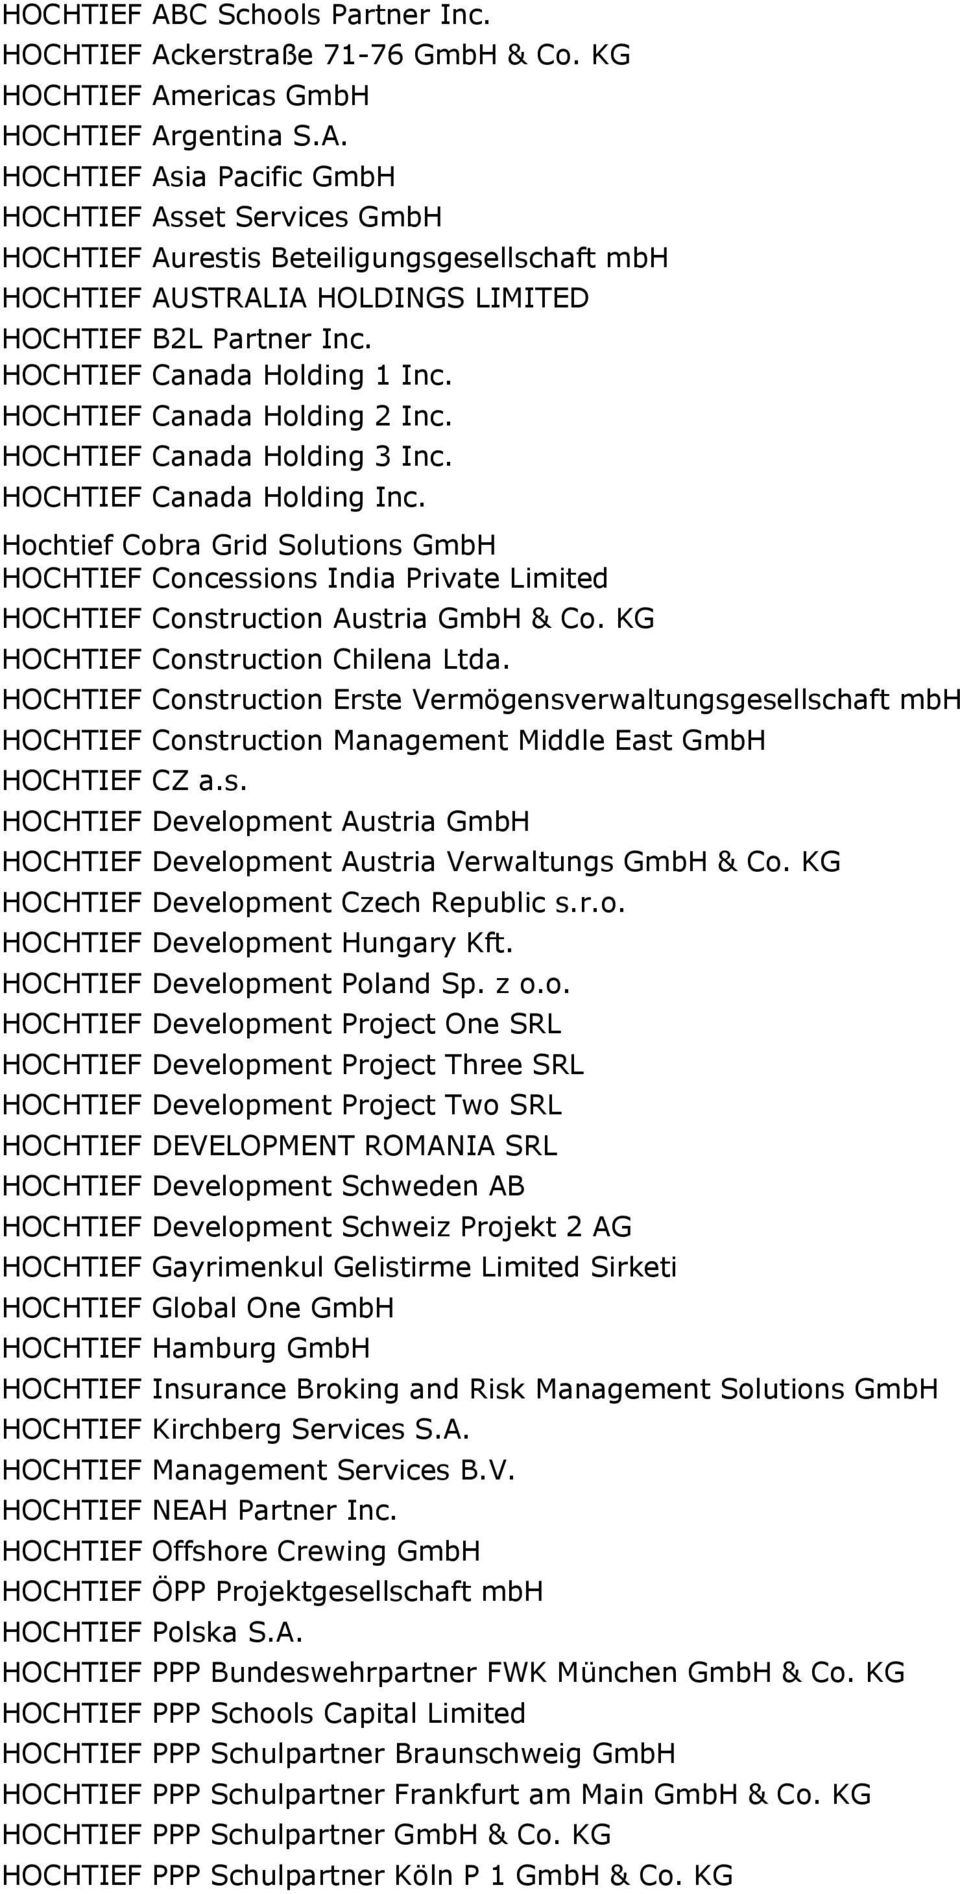 Hochtief Cobra Grid Solutions GmbH HOCHTIEF Concessions India Private Limited HOCHTIEF Construction Austria GmbH & Co. KG HOCHTIEF Construction Chilena Ltda.